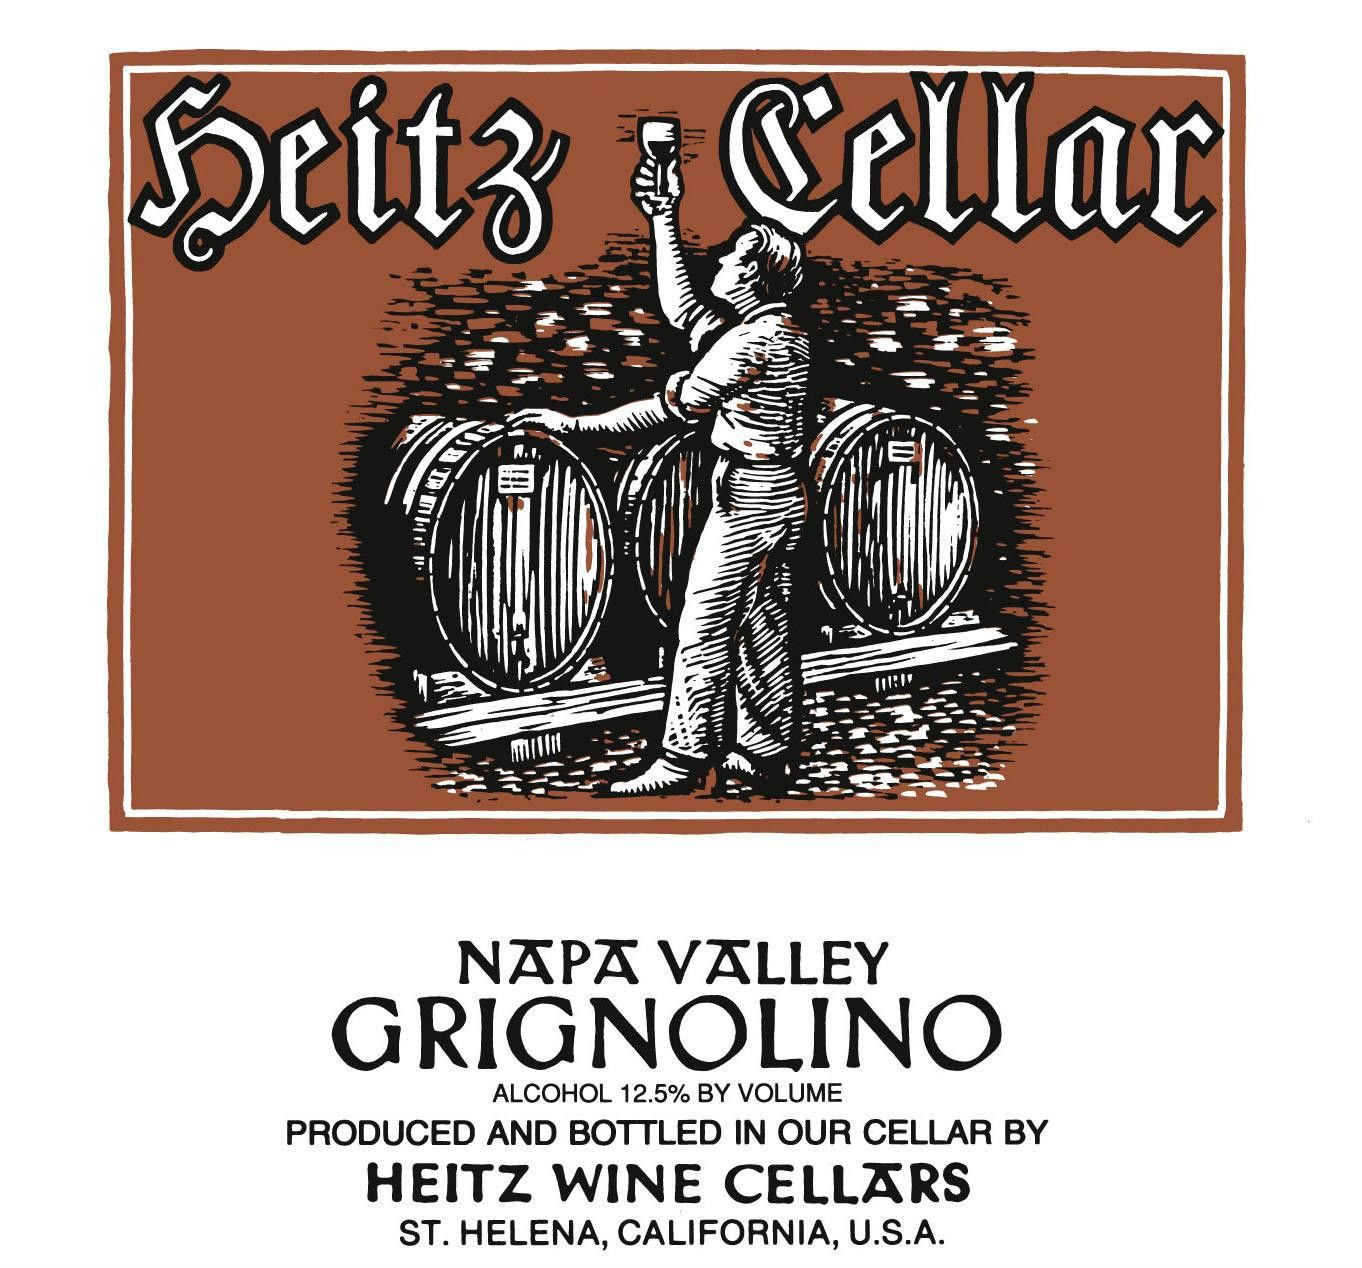 Heitz Cellar Grignolino 2008 Front Label